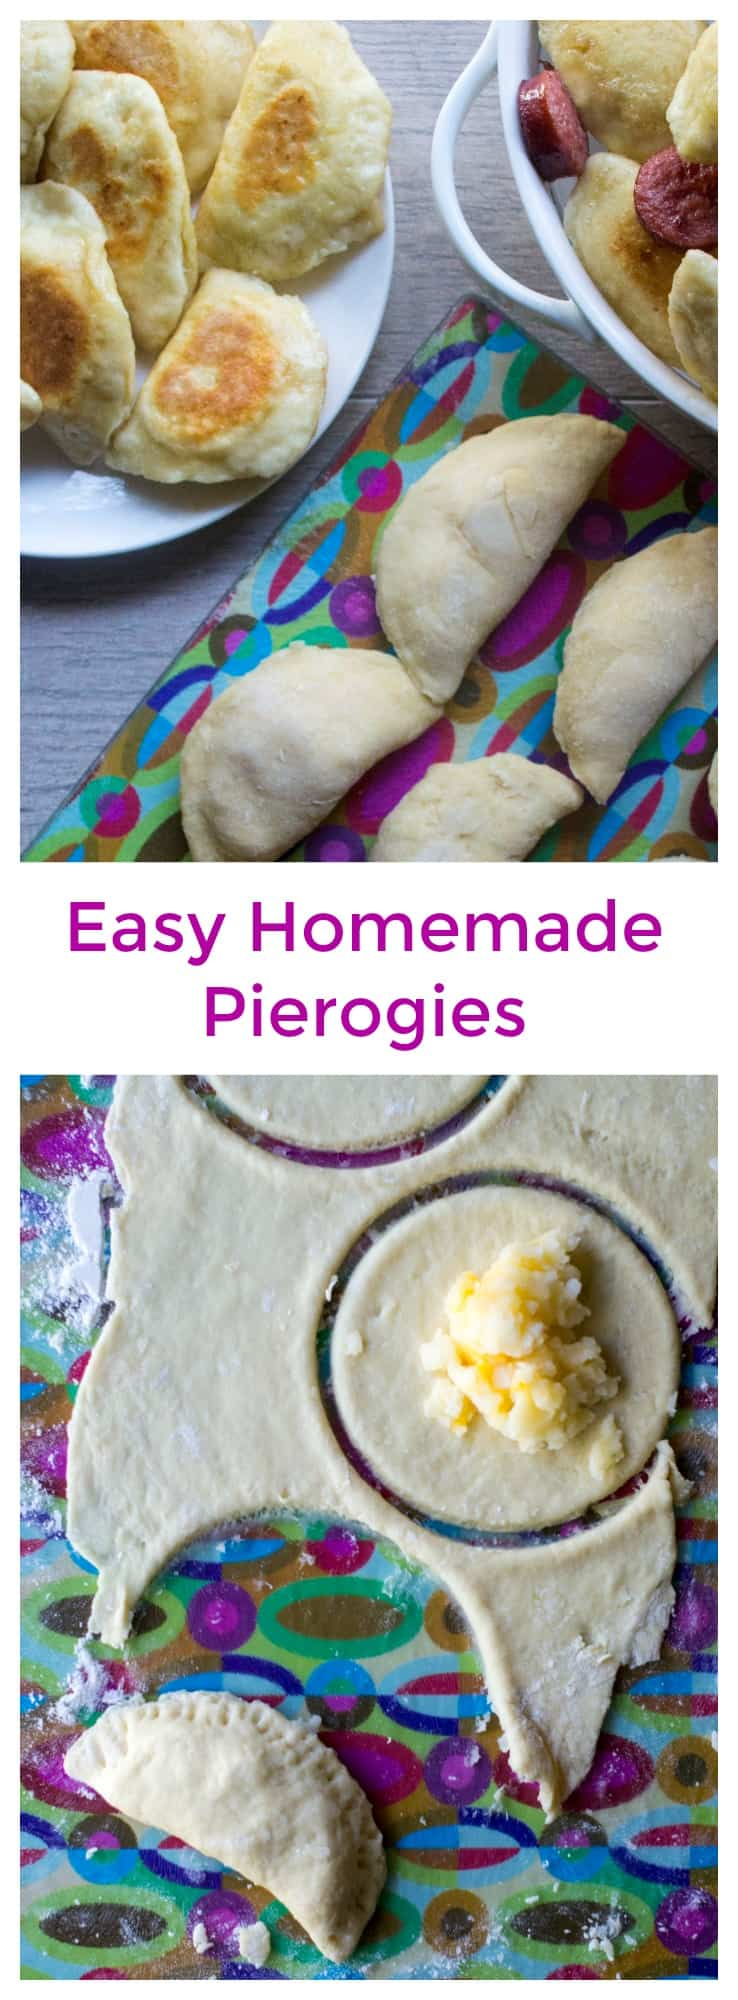 Homemade Pierogies | Homemade Pierogies are easy to make dumplings with a tasty potato and cheese filling and then boiled and sauteed in butter for the most delicious dish! #pierogies #homemadepierogies #polishfood